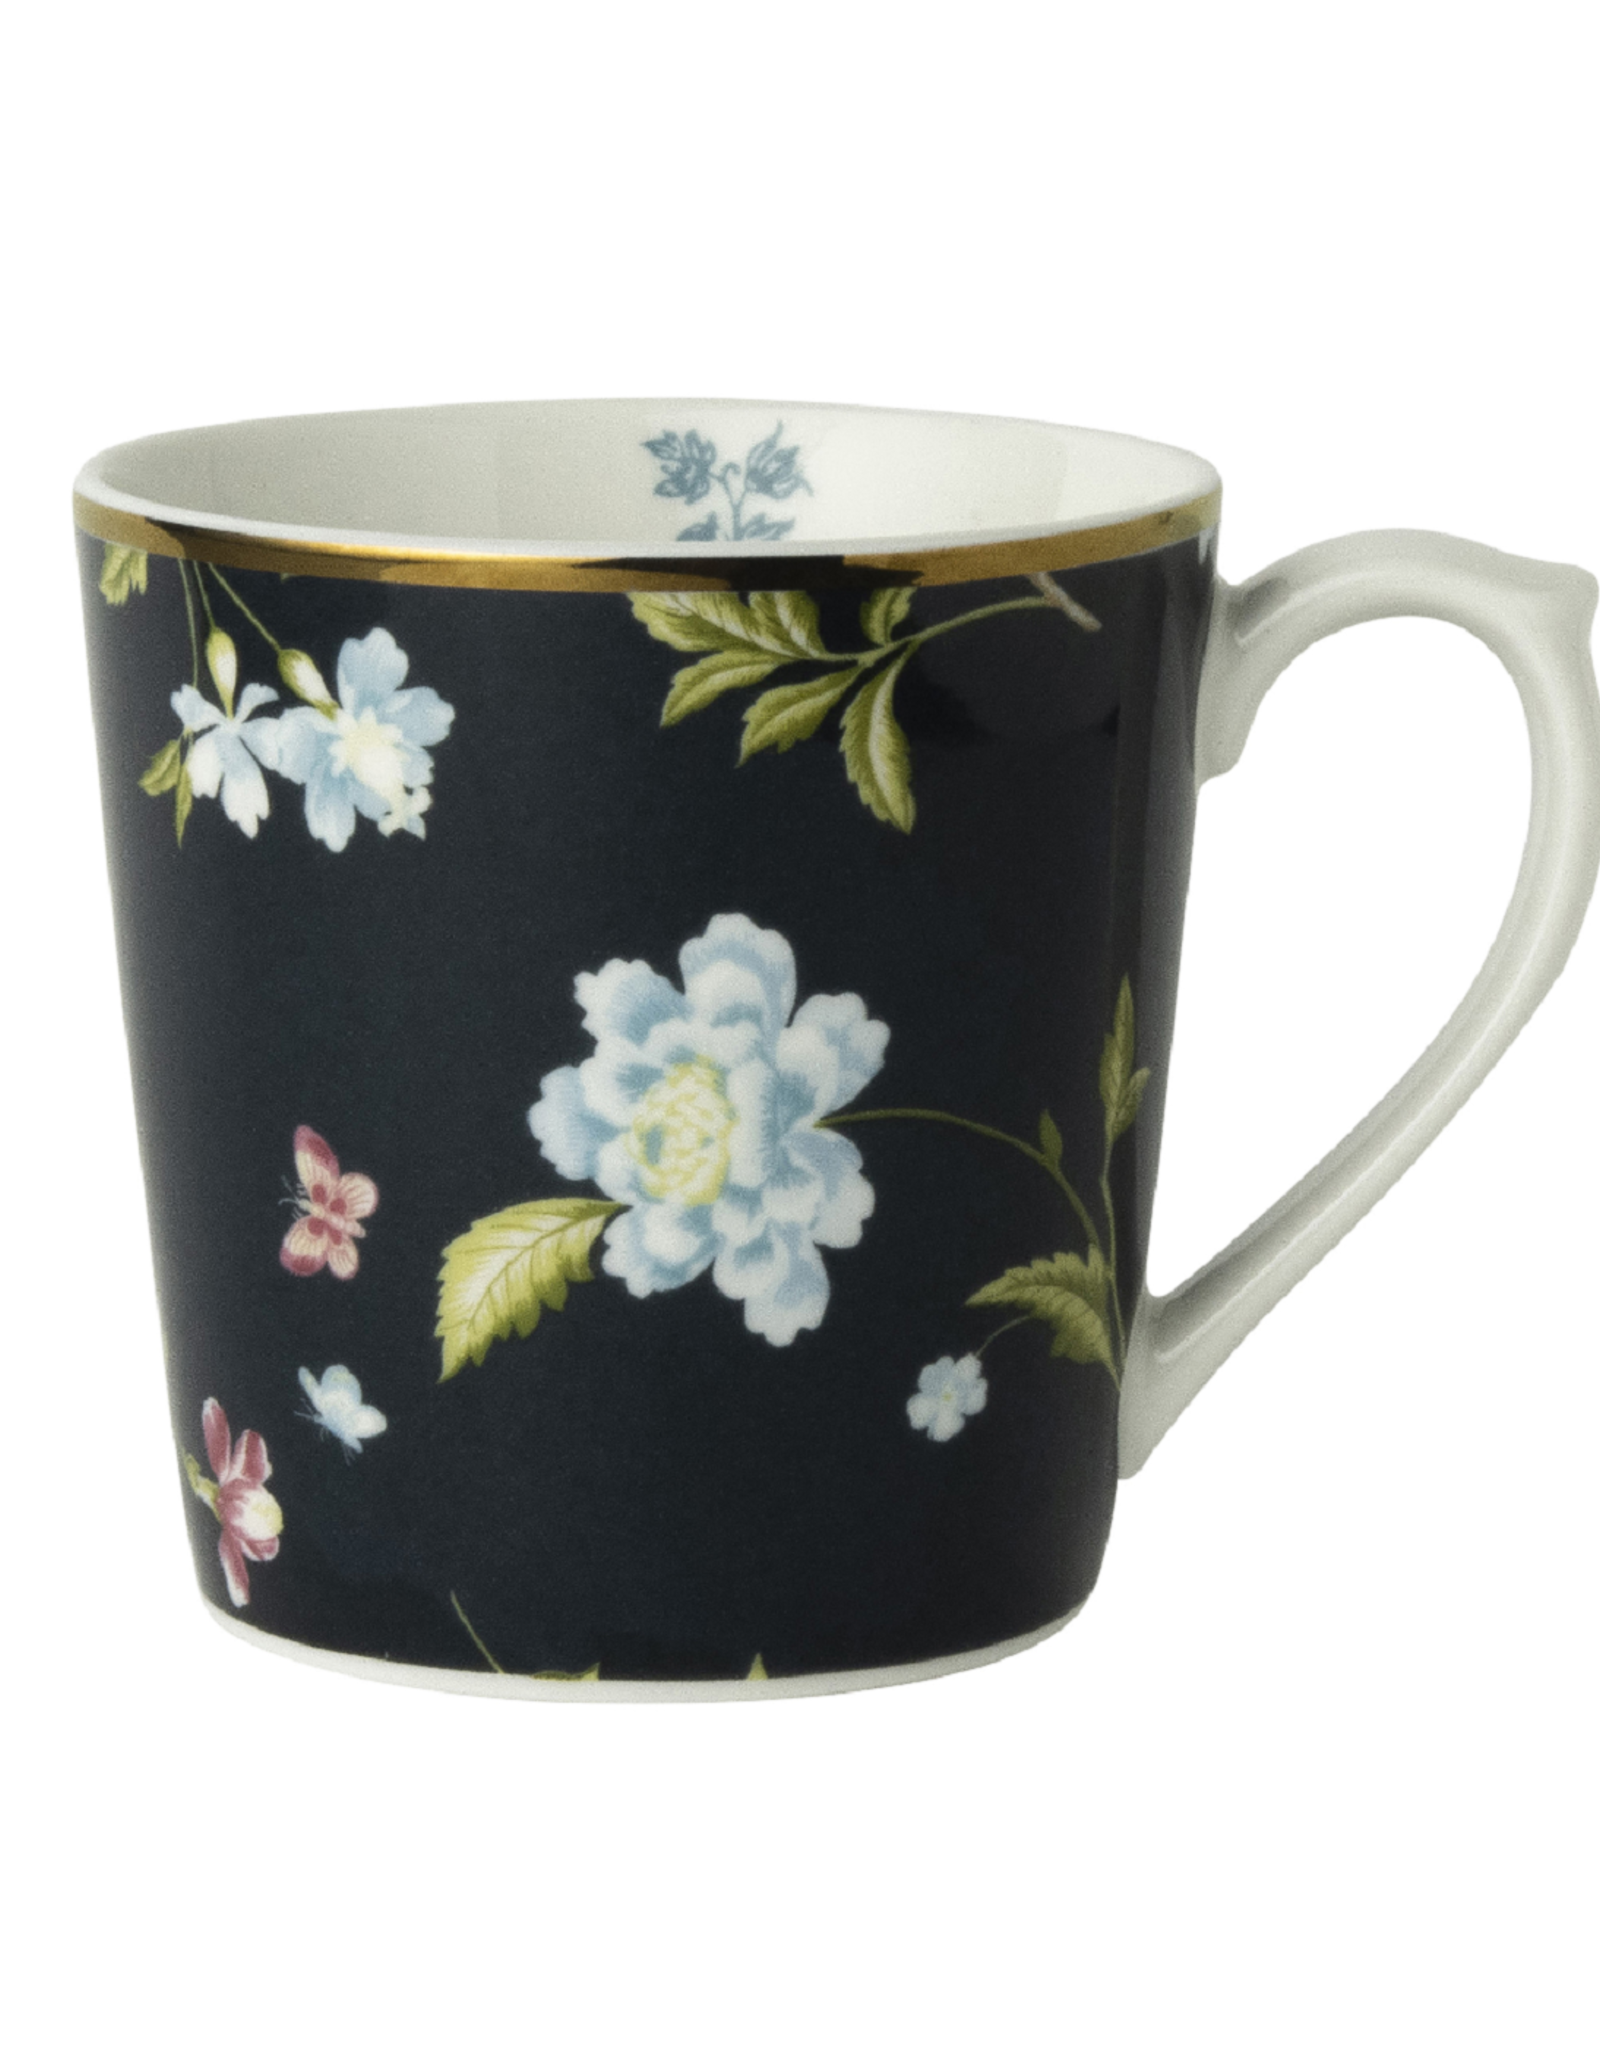 "Laura Ashley Beker Midnight 32cl ""Heritage"" - Laura Ashley"